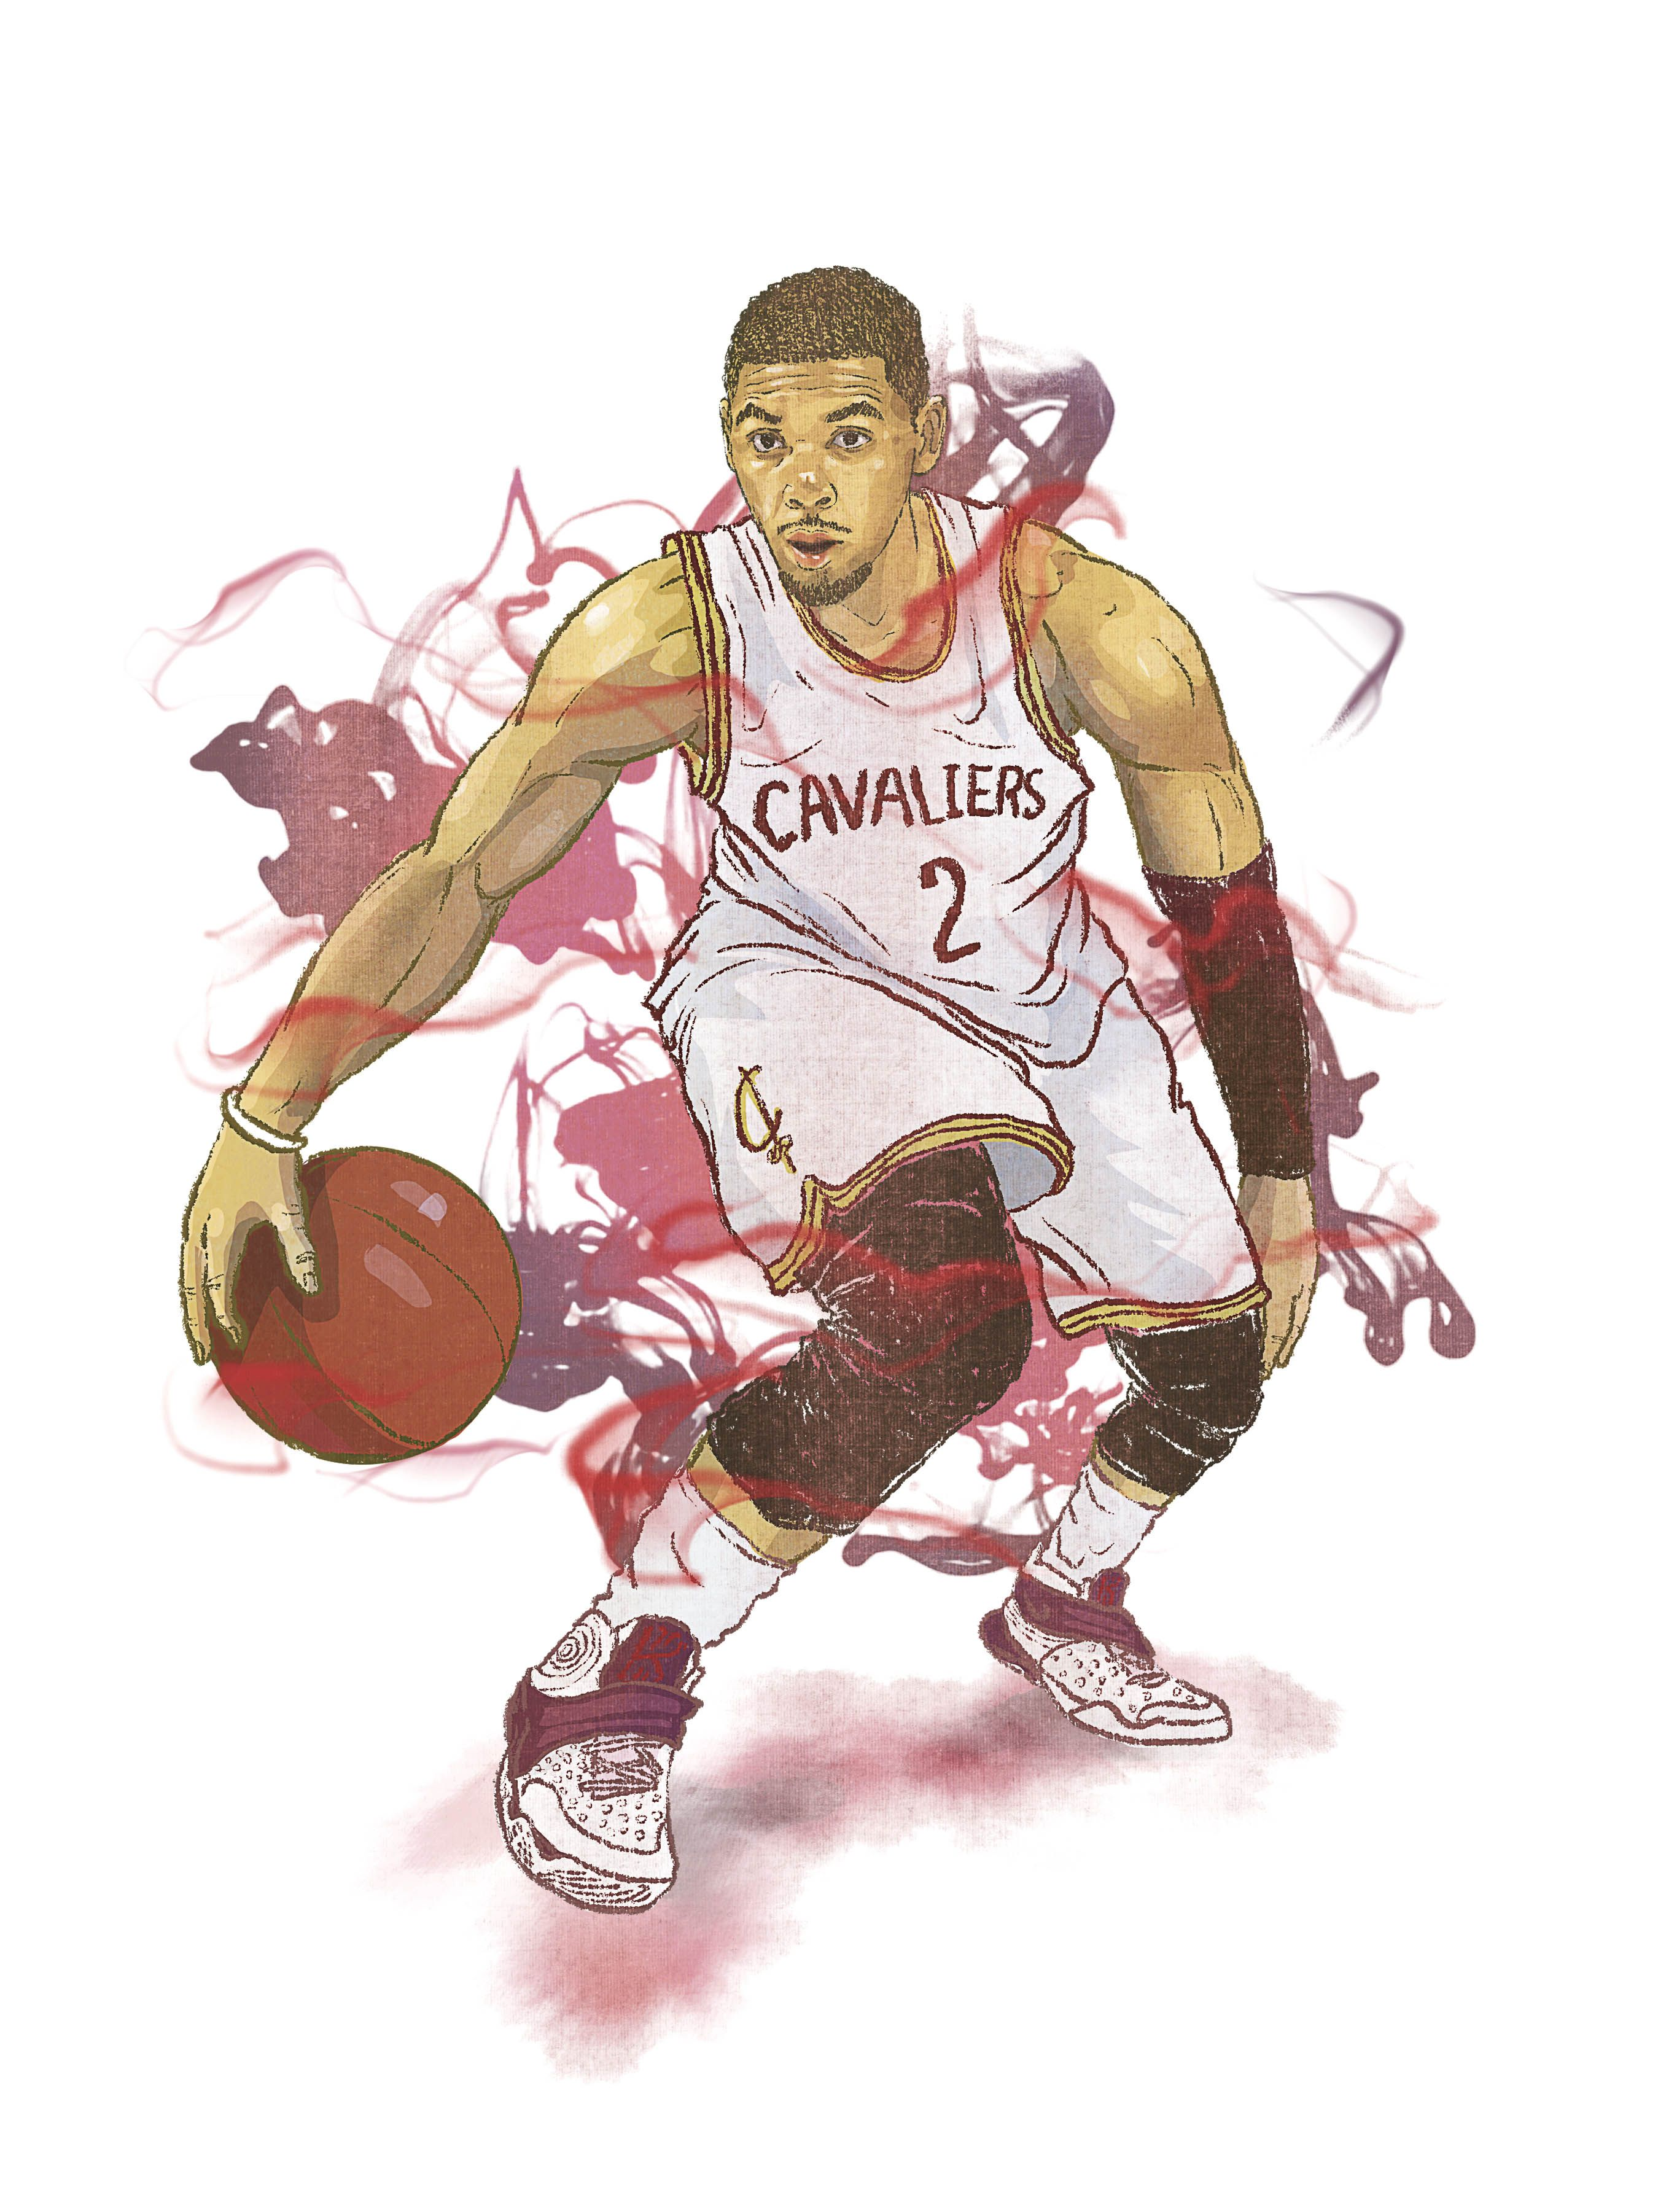 5198bed8563e Kyrie Irving by Yu-Ming Huang illustration©  cavs  kyrieirving  clevelander   cavaliers  cavs  KyrieIrving  2  illustrator  Illustration  art  artist ...